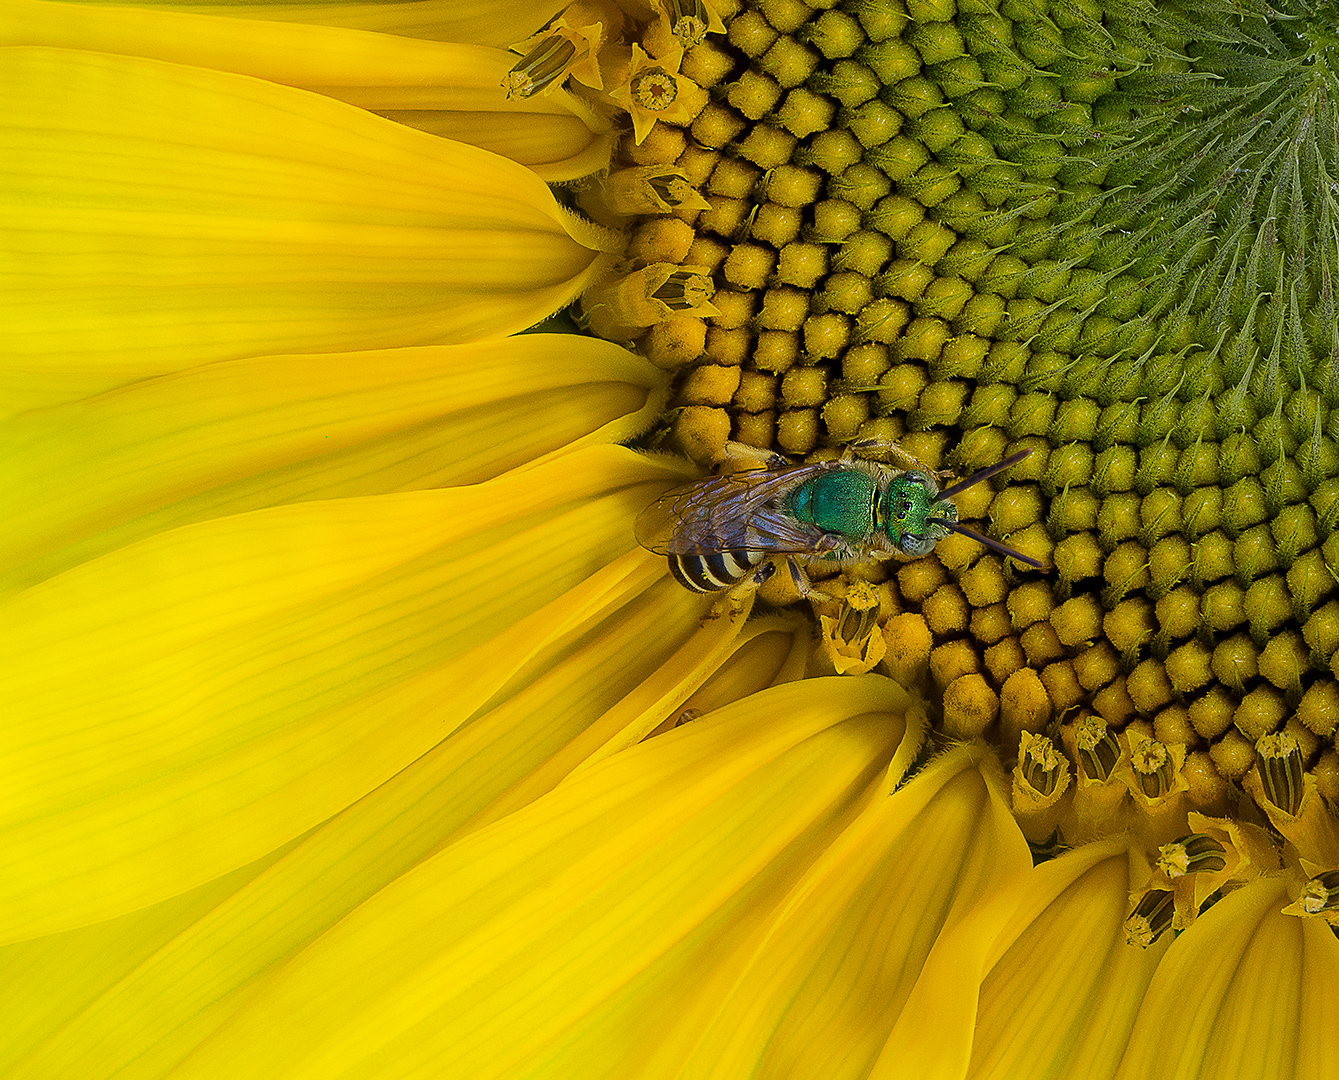 Sweat Bee on Sunflower